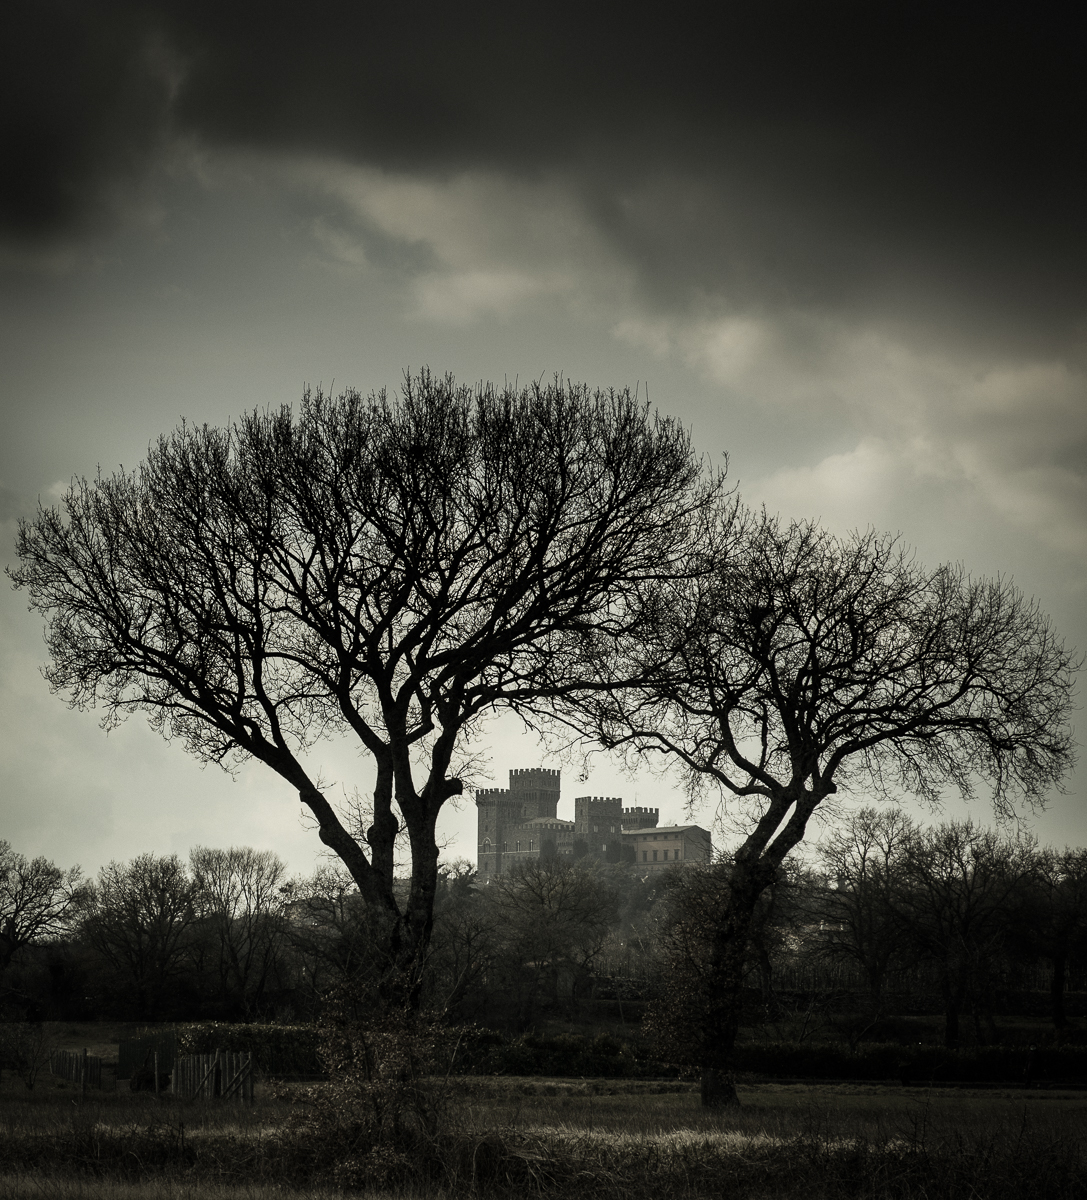 For those who have a taste for the sinister, we can include in our tour of places to photograph in Tuscany, the creepy Castle Cahen in Torre Alfina. Orvieto, Italy